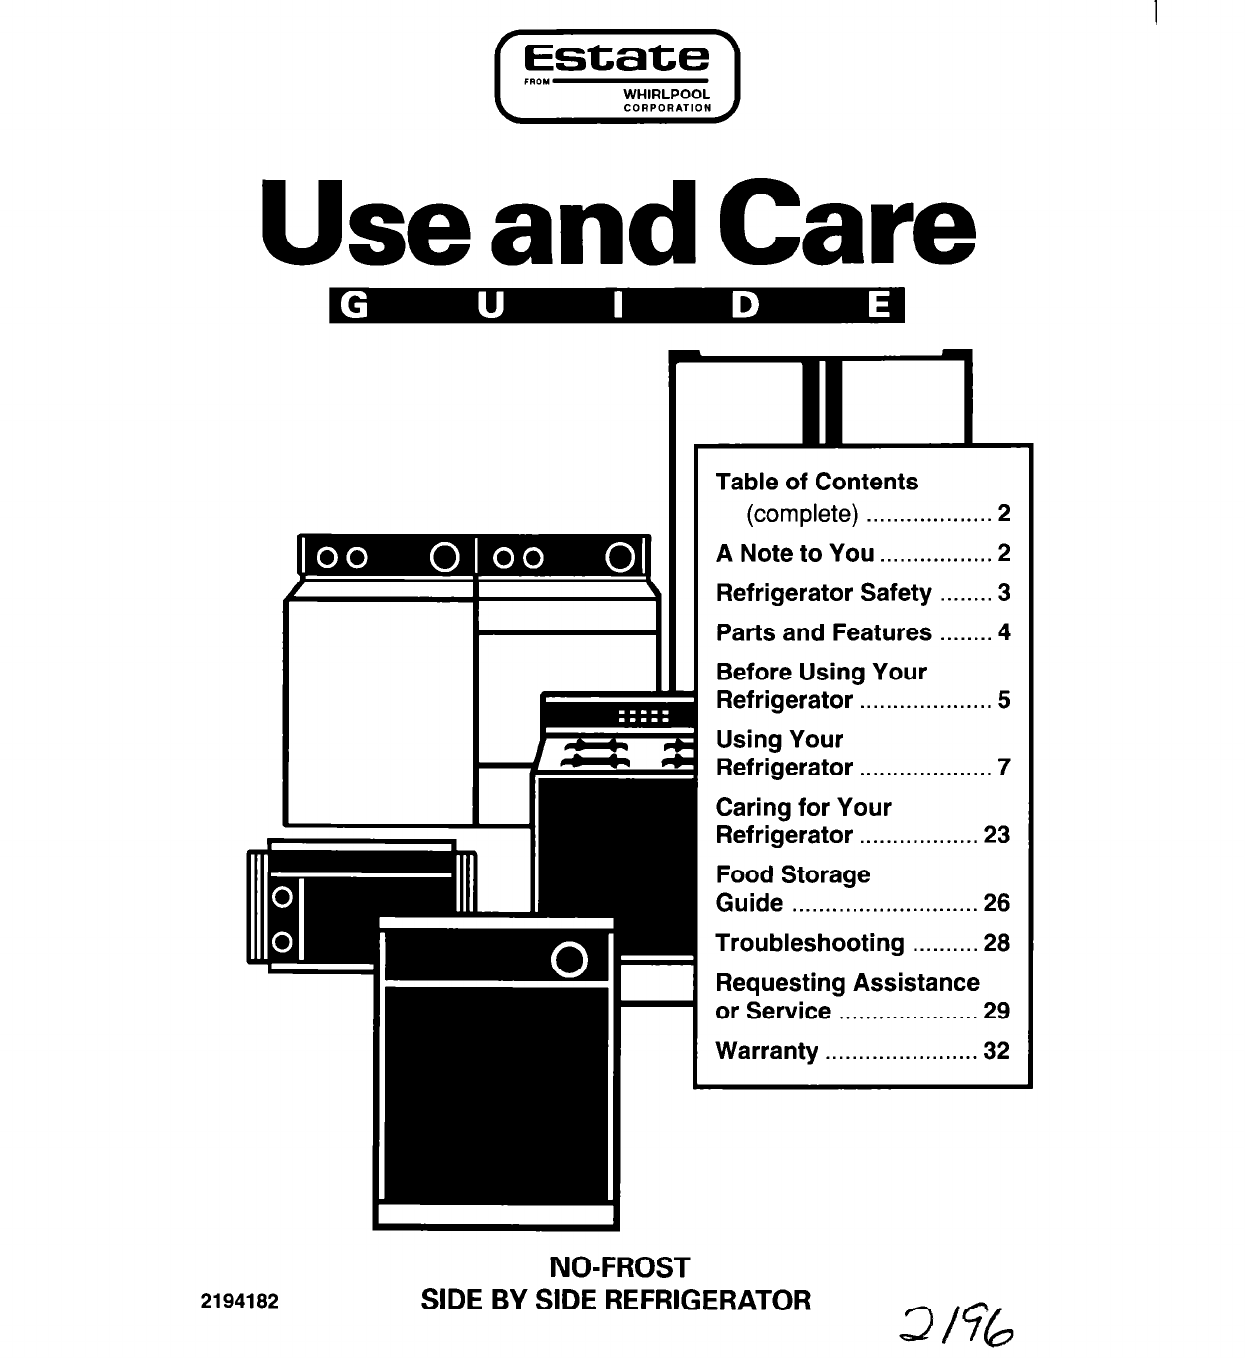 whirlpool refrigerator 2194182 user guide